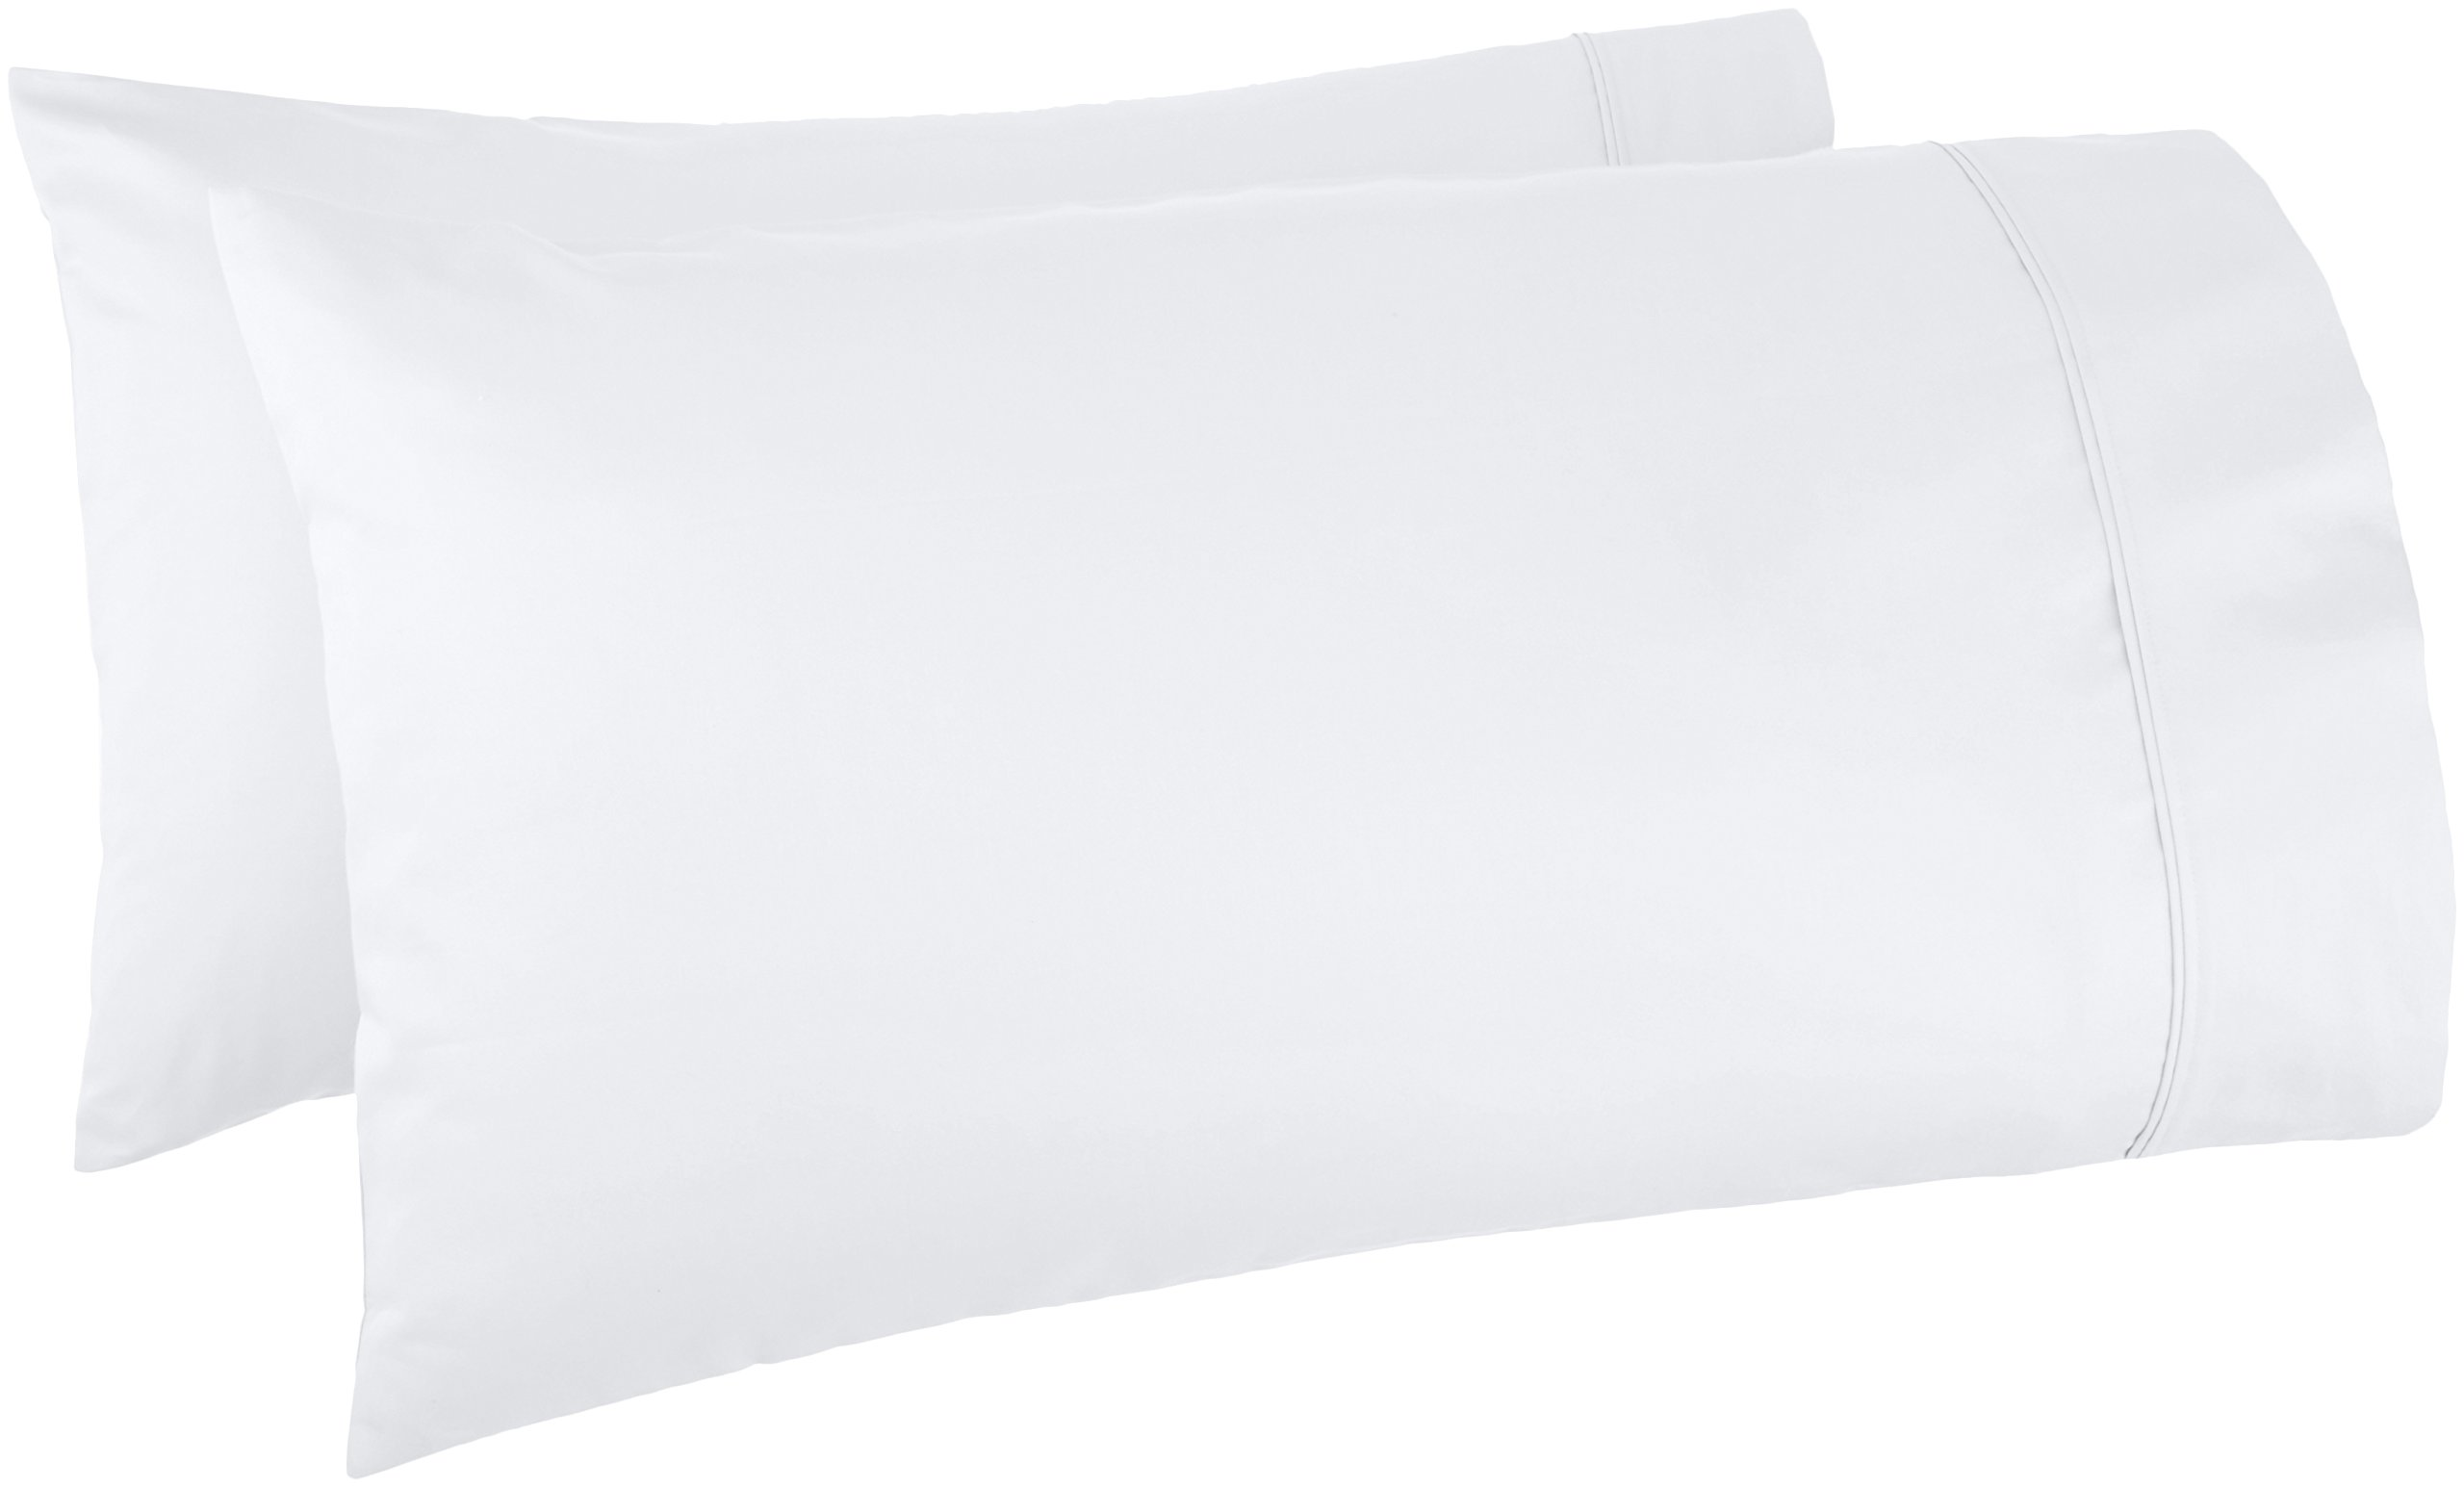 AmazonBasics 400 Thread Count Pillow Cases - Standard, Set of 2, White by AmazonBasics